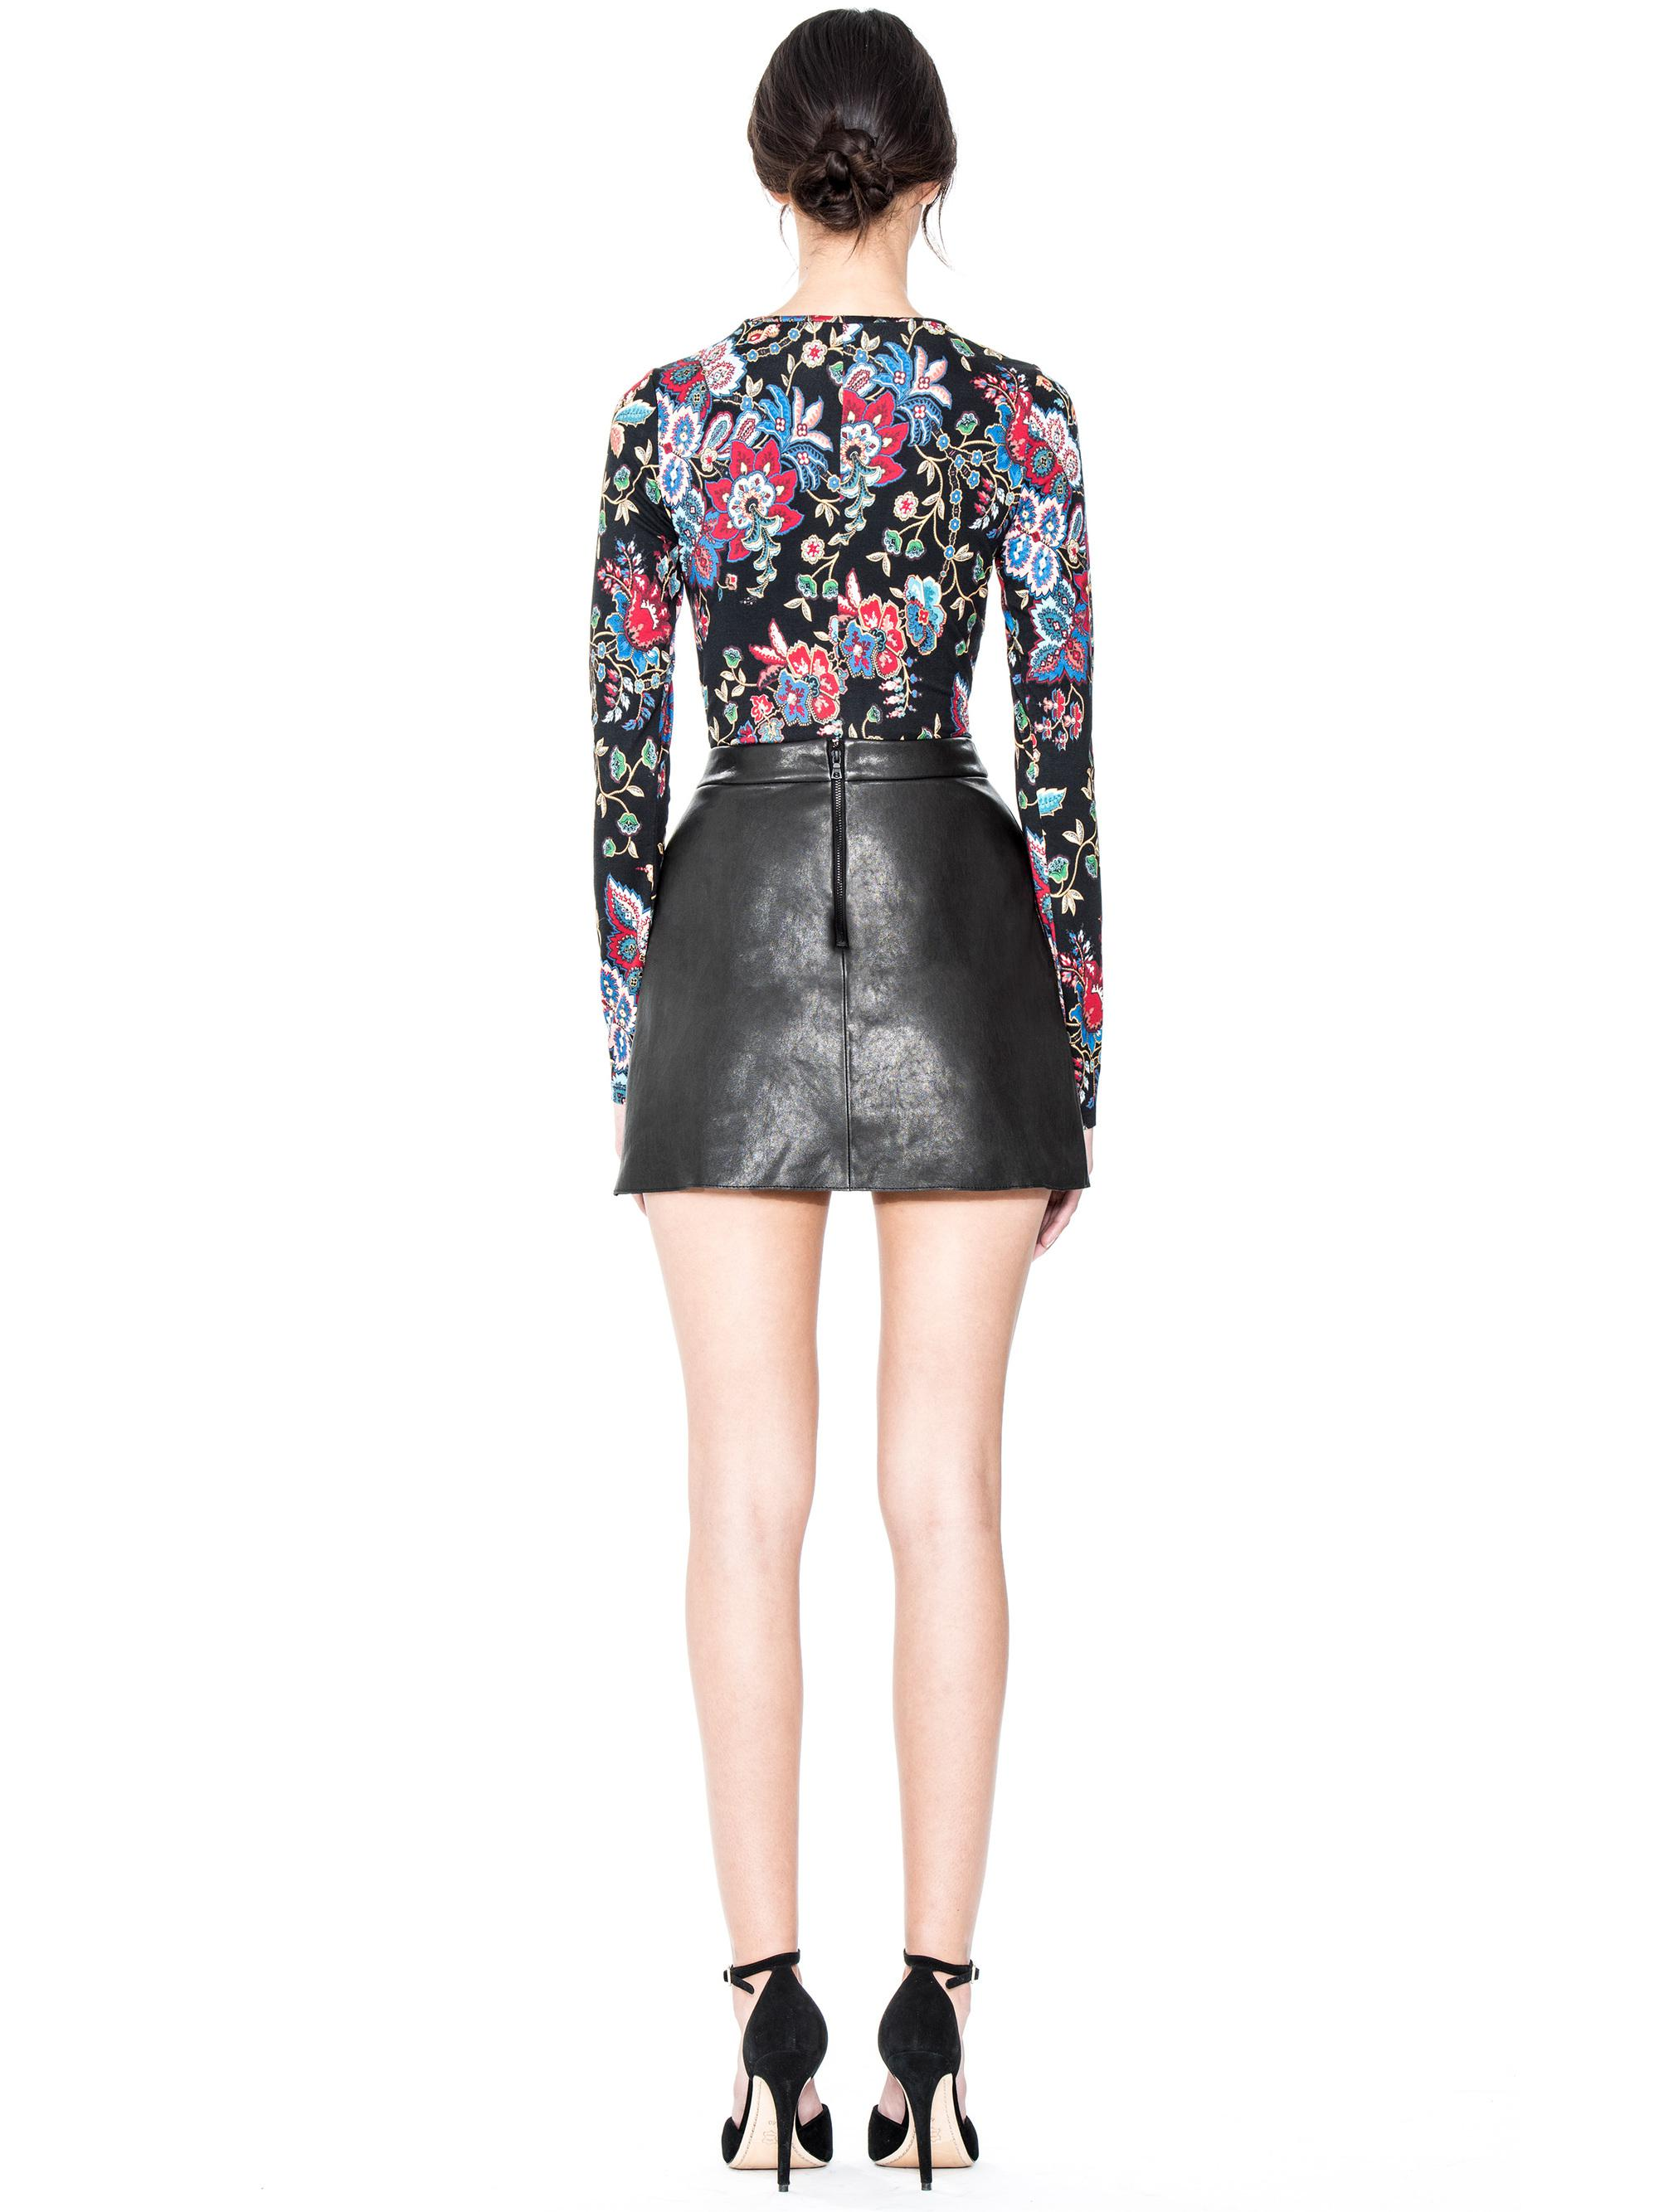 cbc840dfa Gallery. Women's Leather Skirts Women's Black Leather Skirts Women's  Leather Mini Skirts